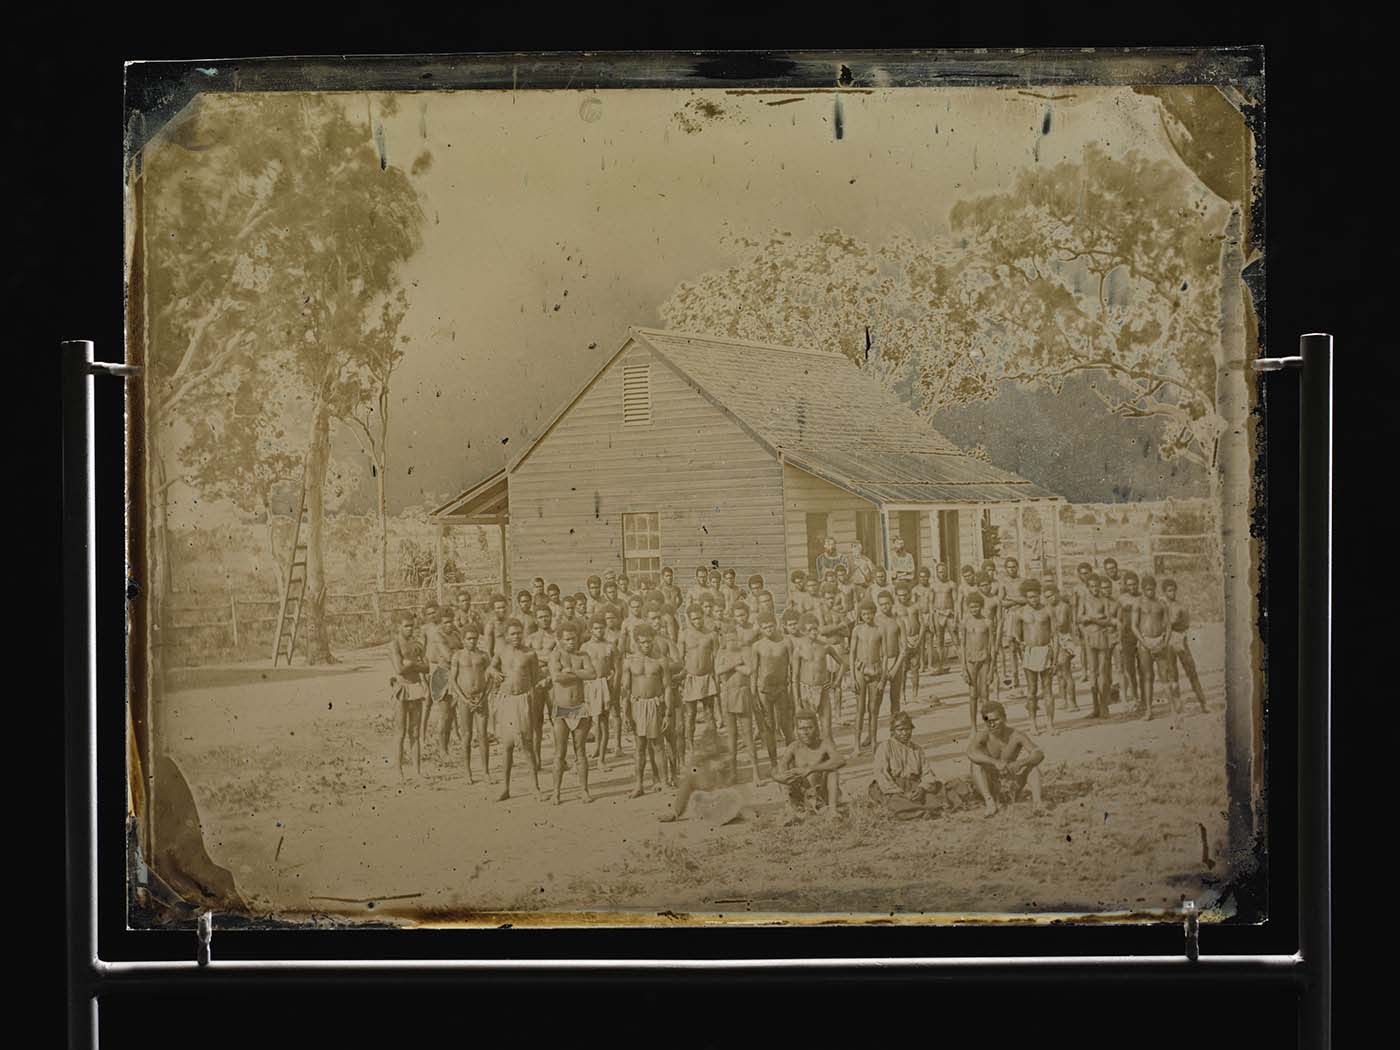 A large group of men, mainly wearing loin cloths, standing and sitting outside a small wooden building, with gum trees in the background. - click to view larger image